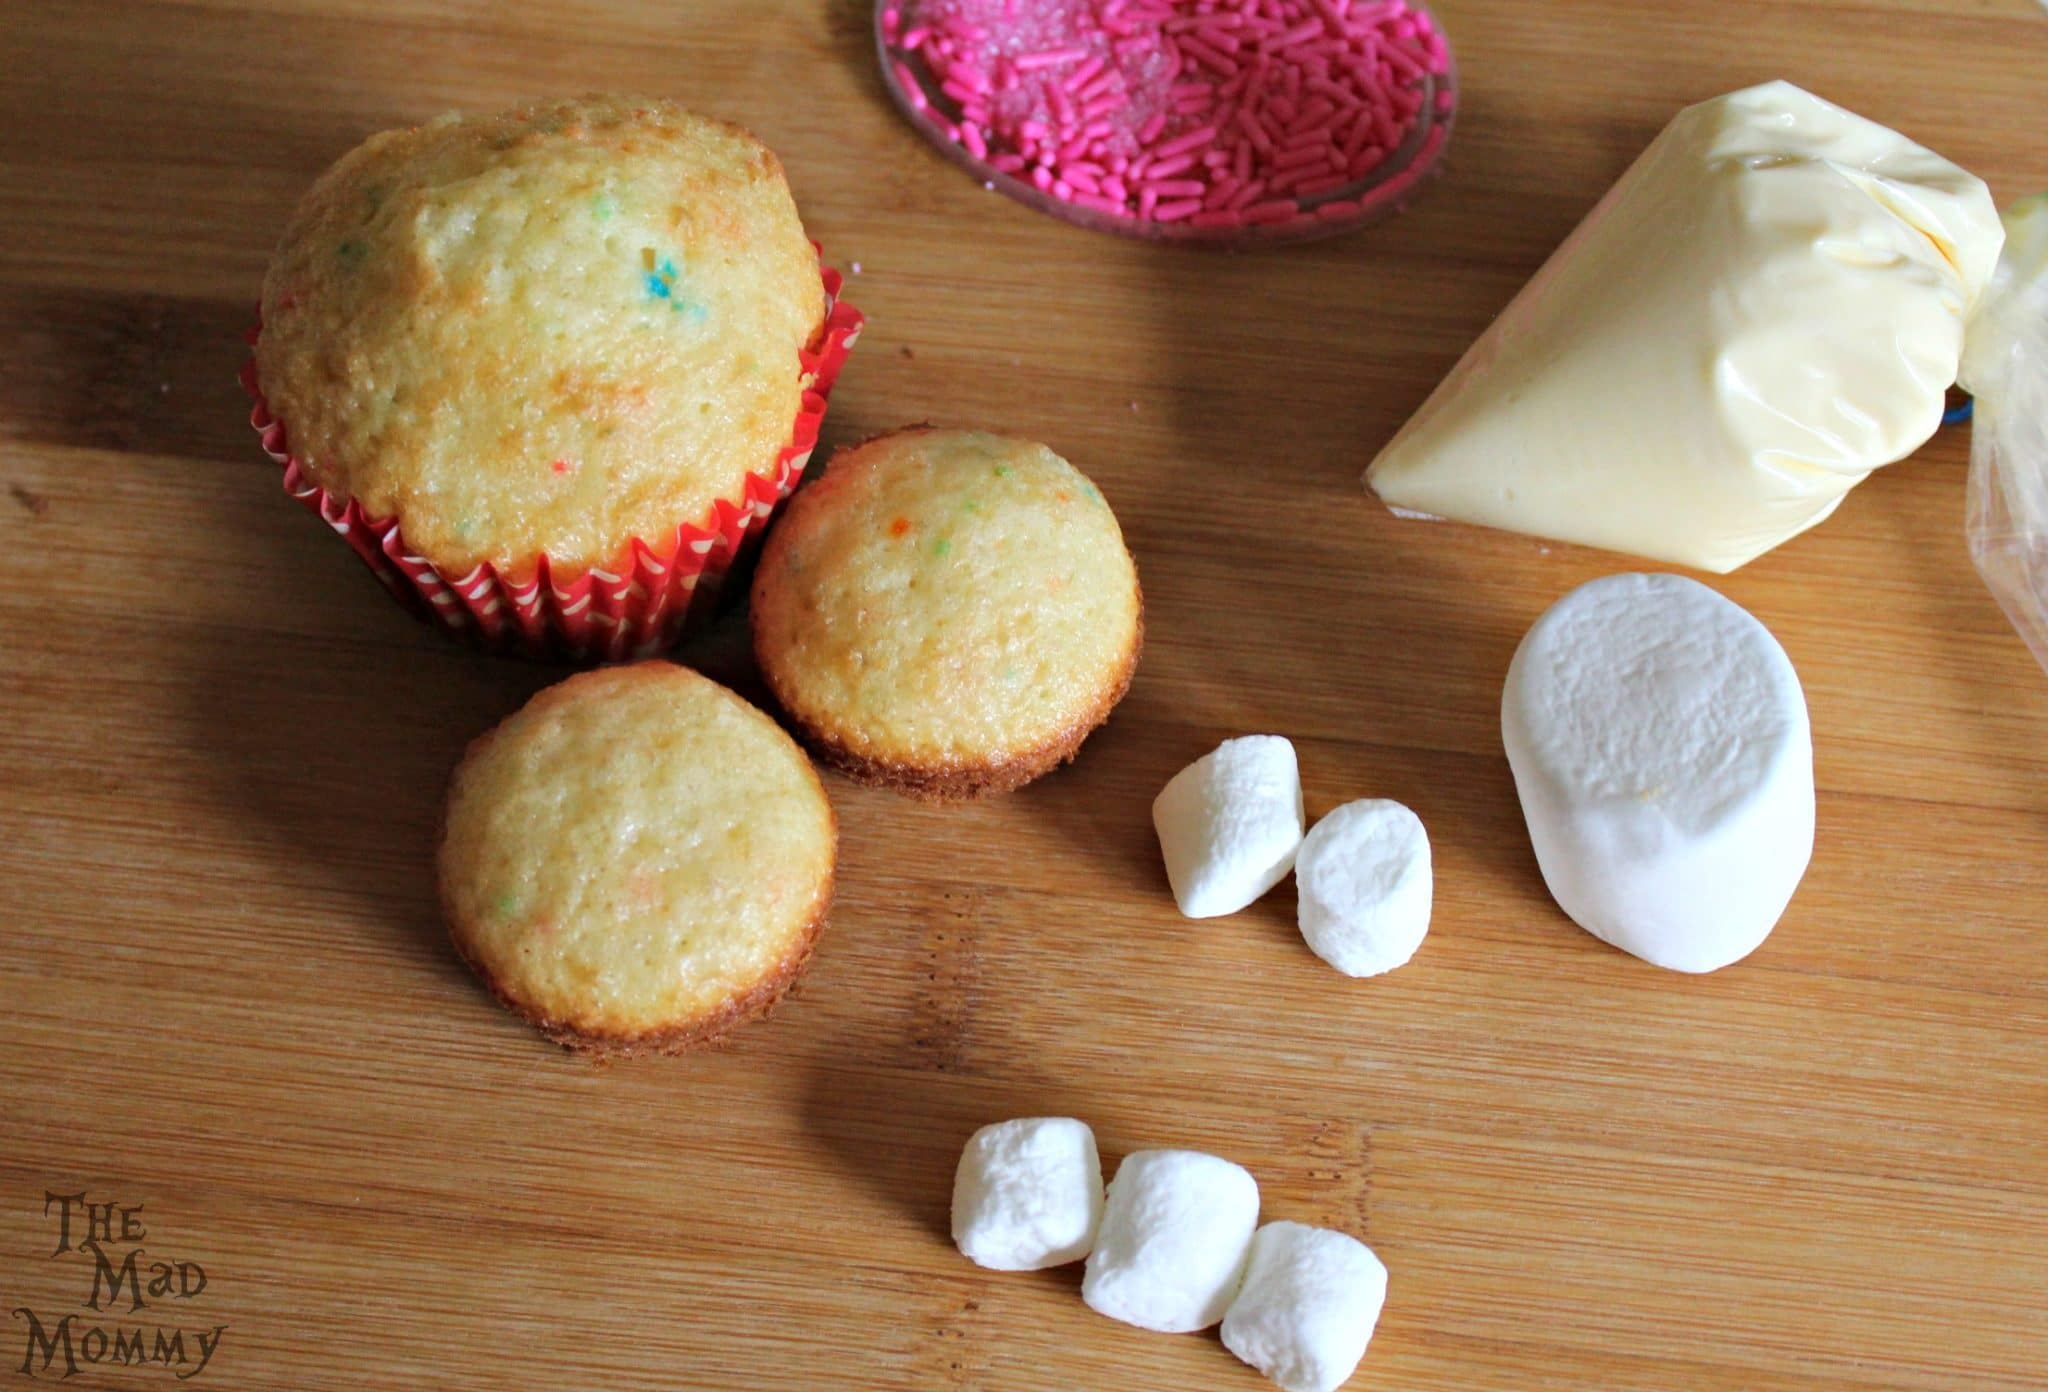 The ingredients for The Mad Mommy's Quick Like A Bunny Cupcakes!